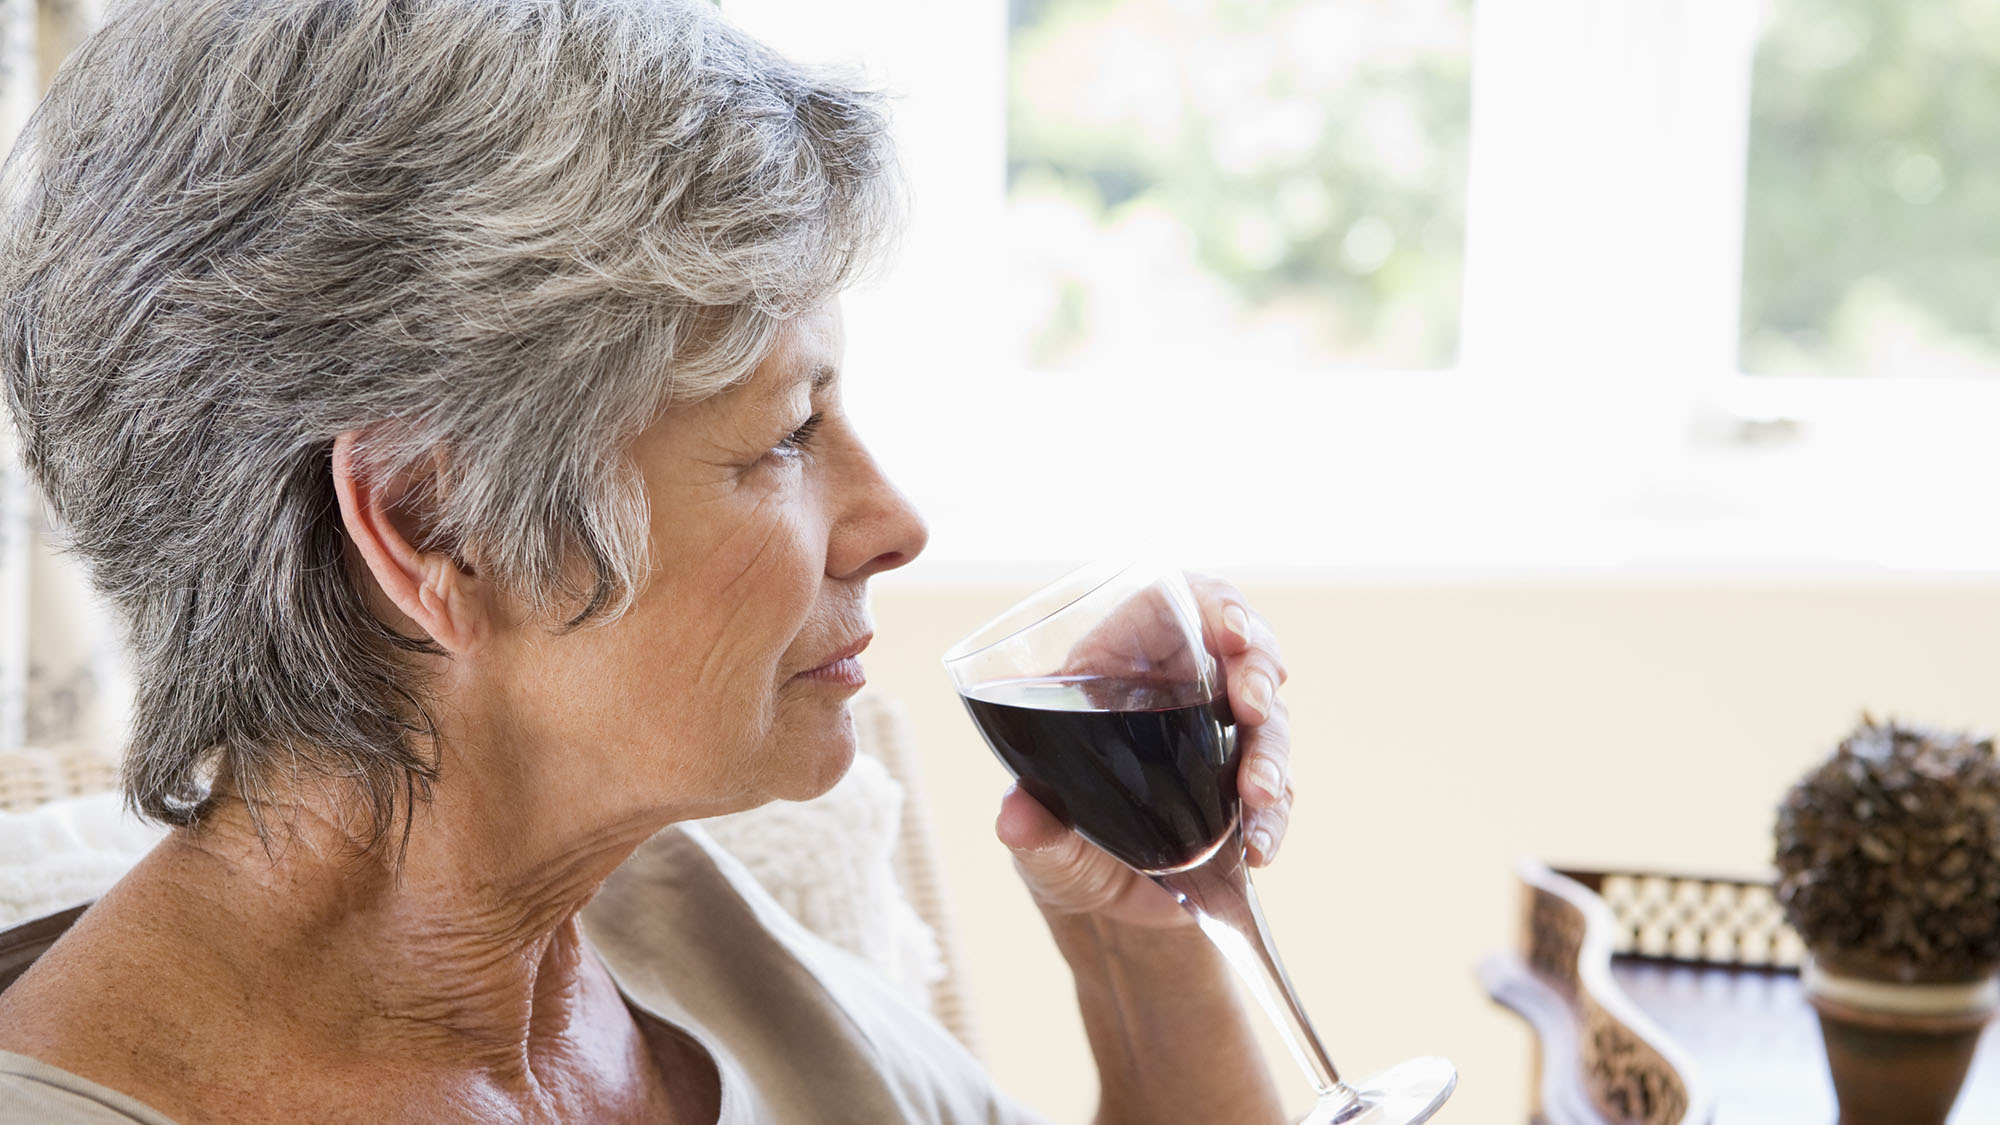 Can red wine help prevent hearing problems?